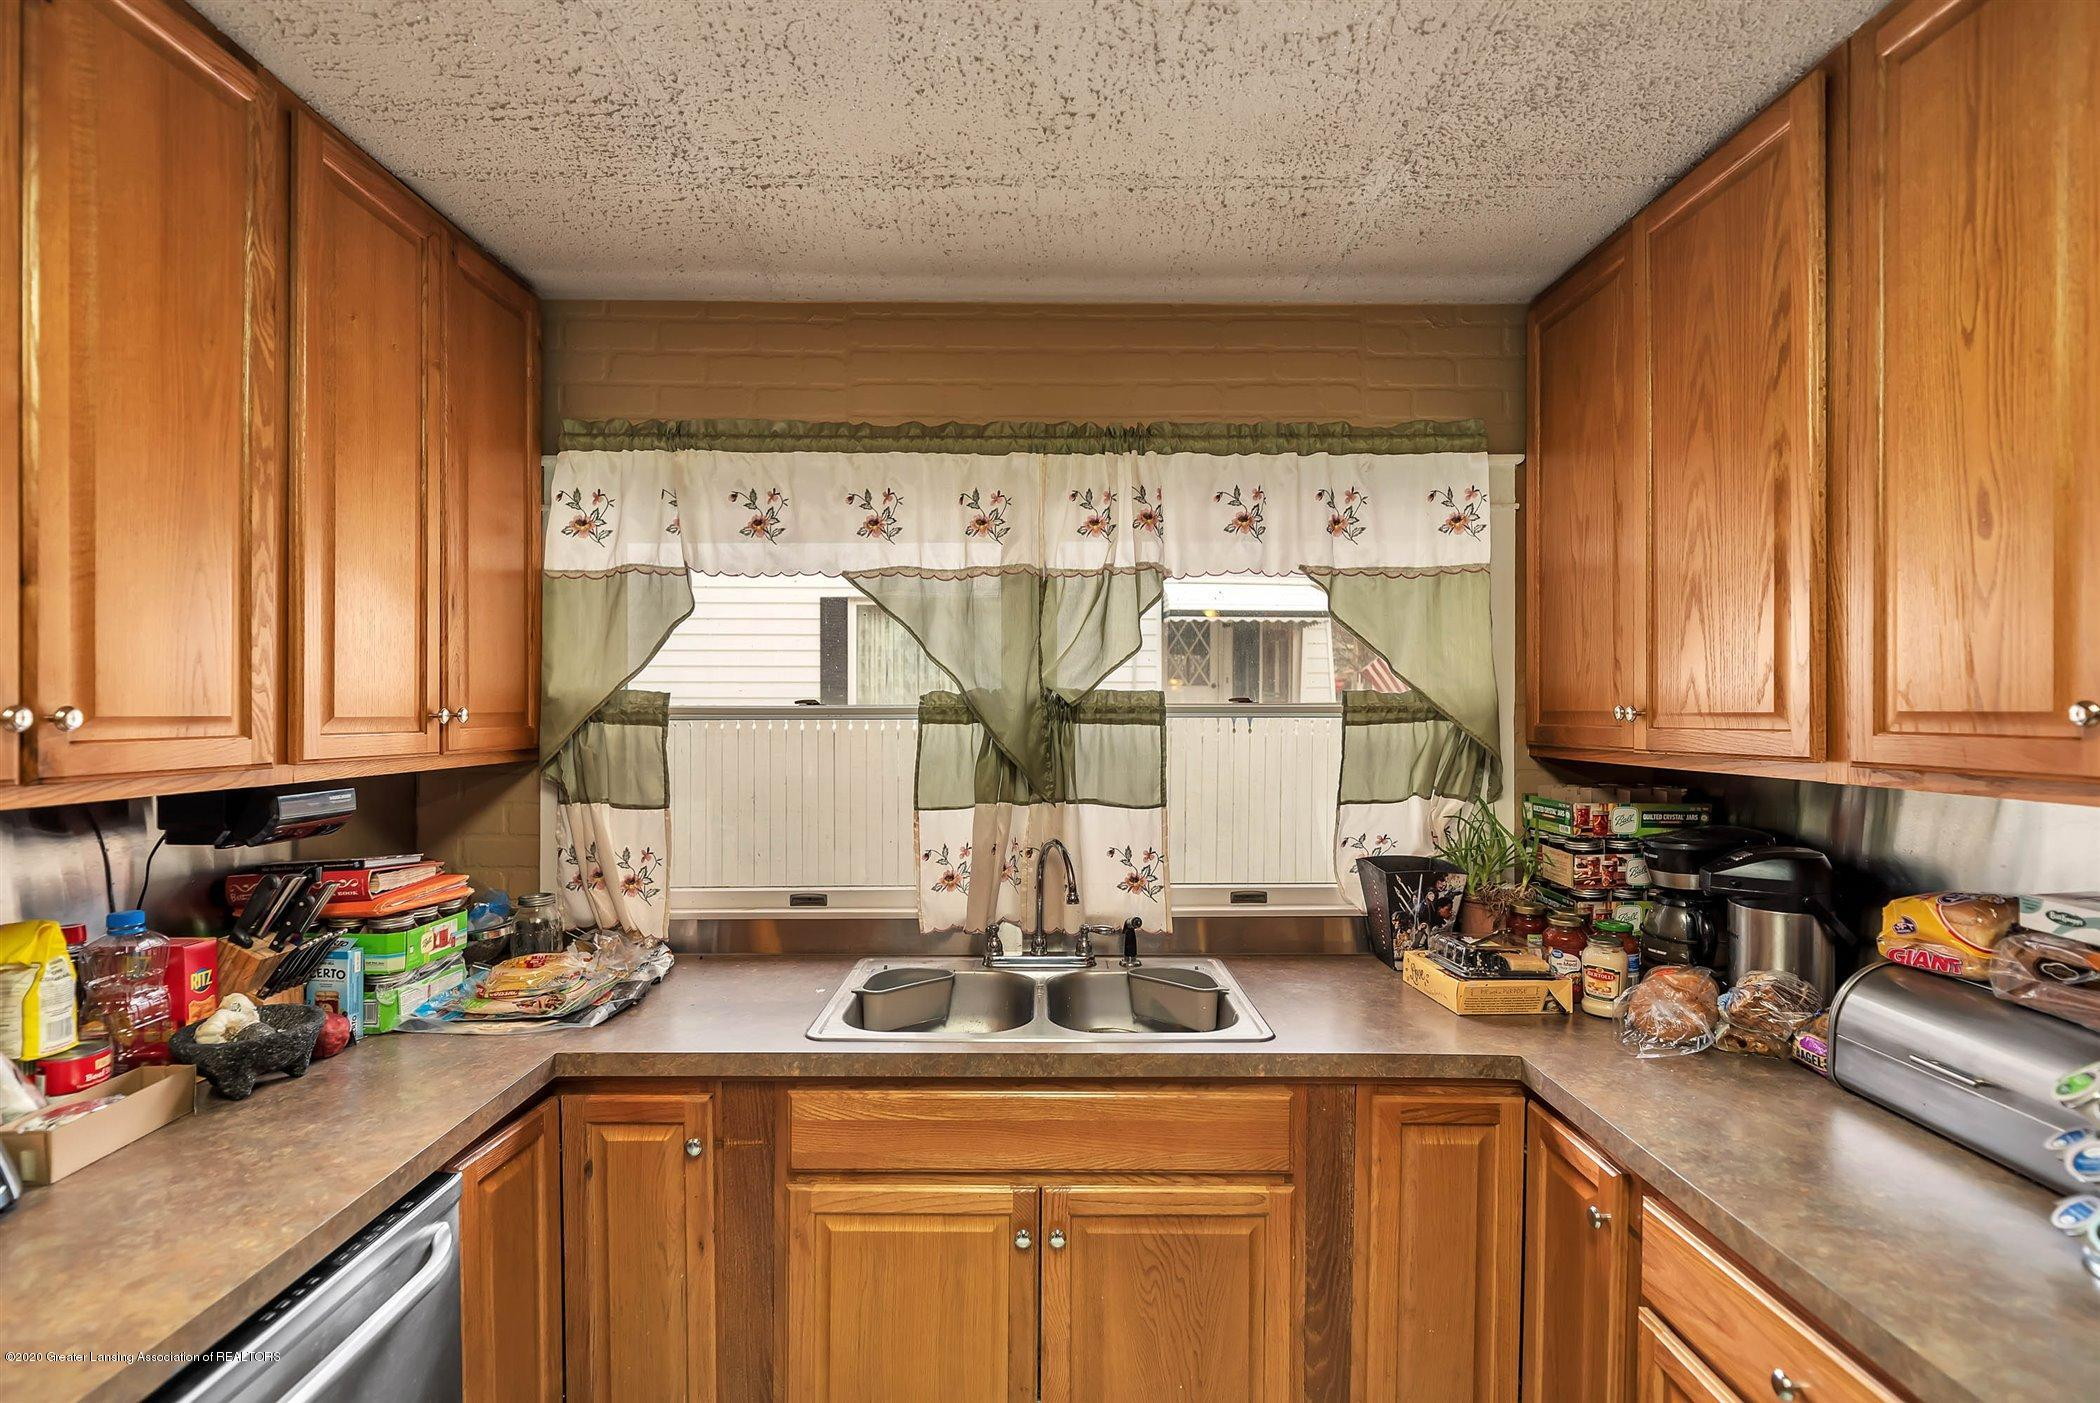 402 W Williams St - Kitchen - 17